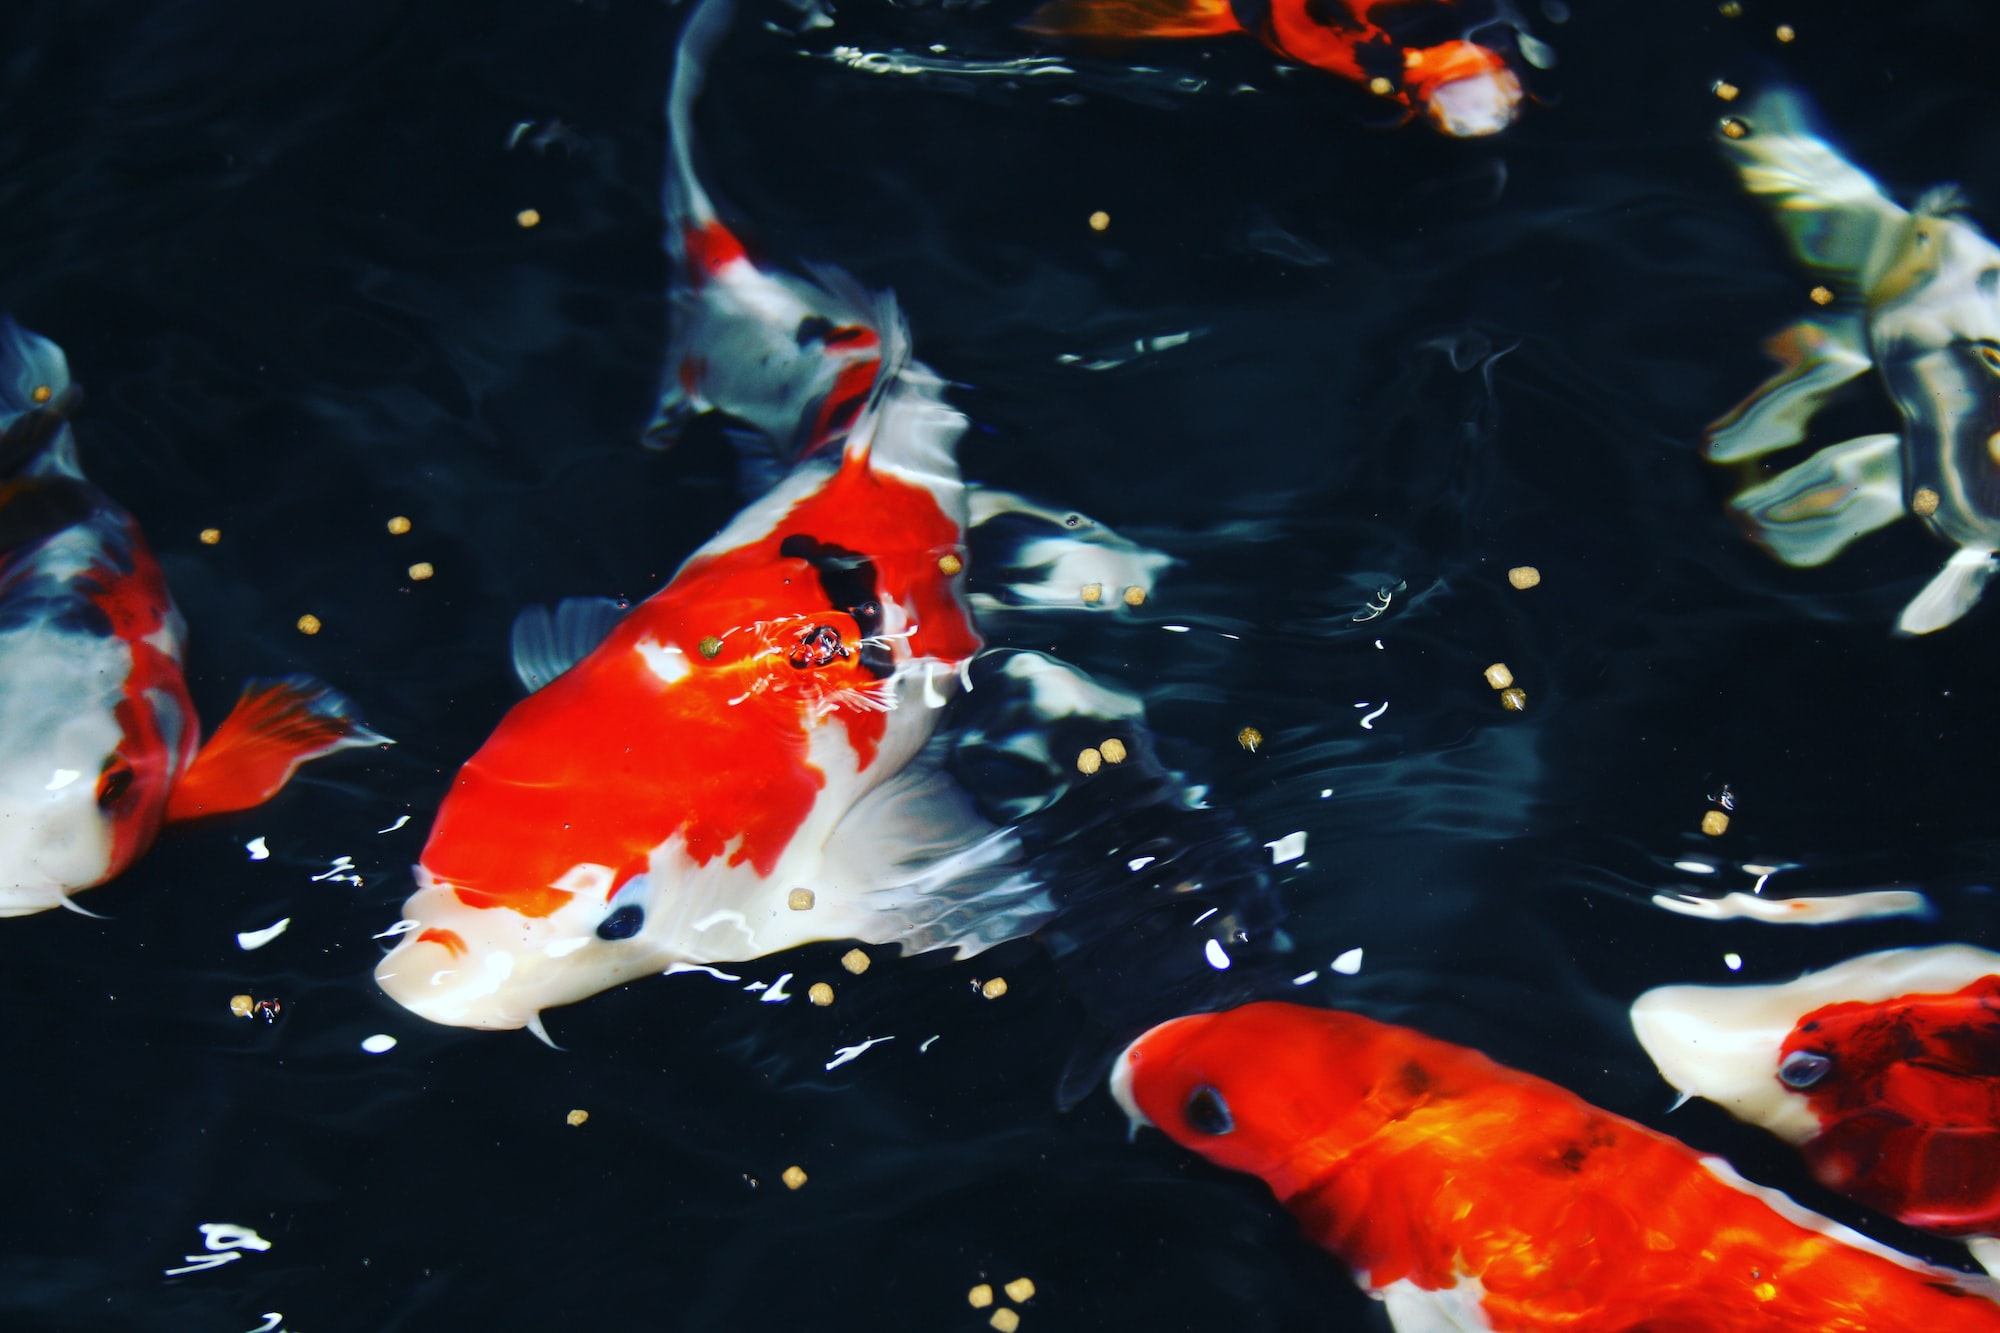 For the most up to date fish photography please follow @just_koi_fish on Instagram. Credit @Just_Koi_Fish.